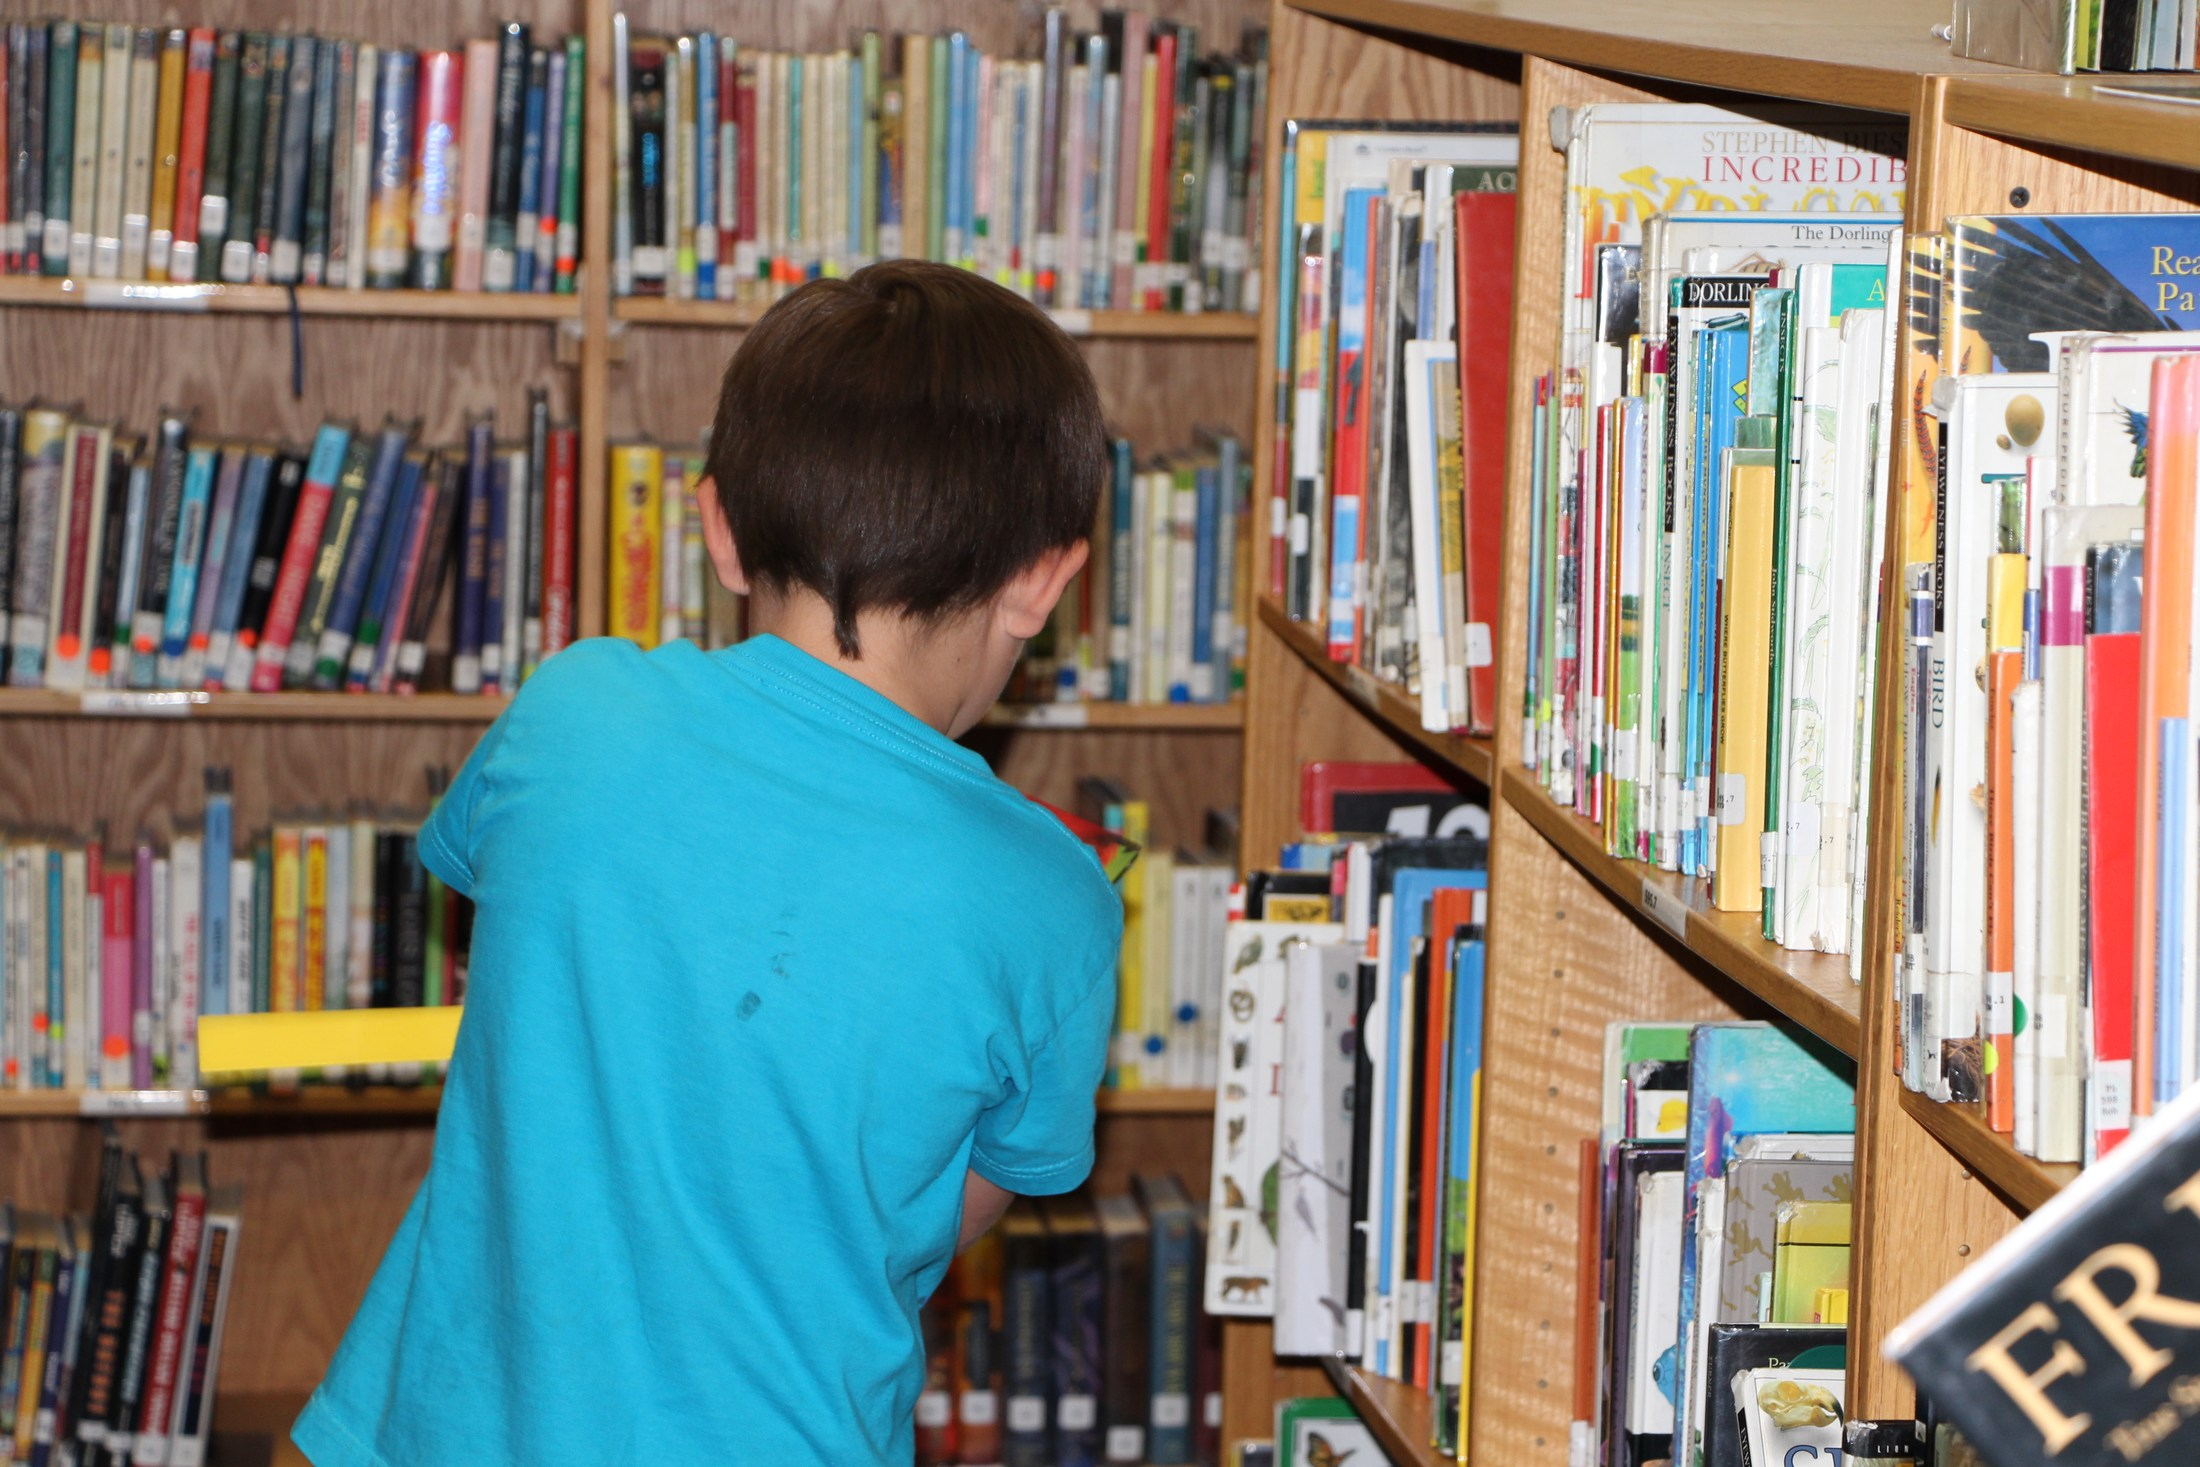 Child selecting a book from library.